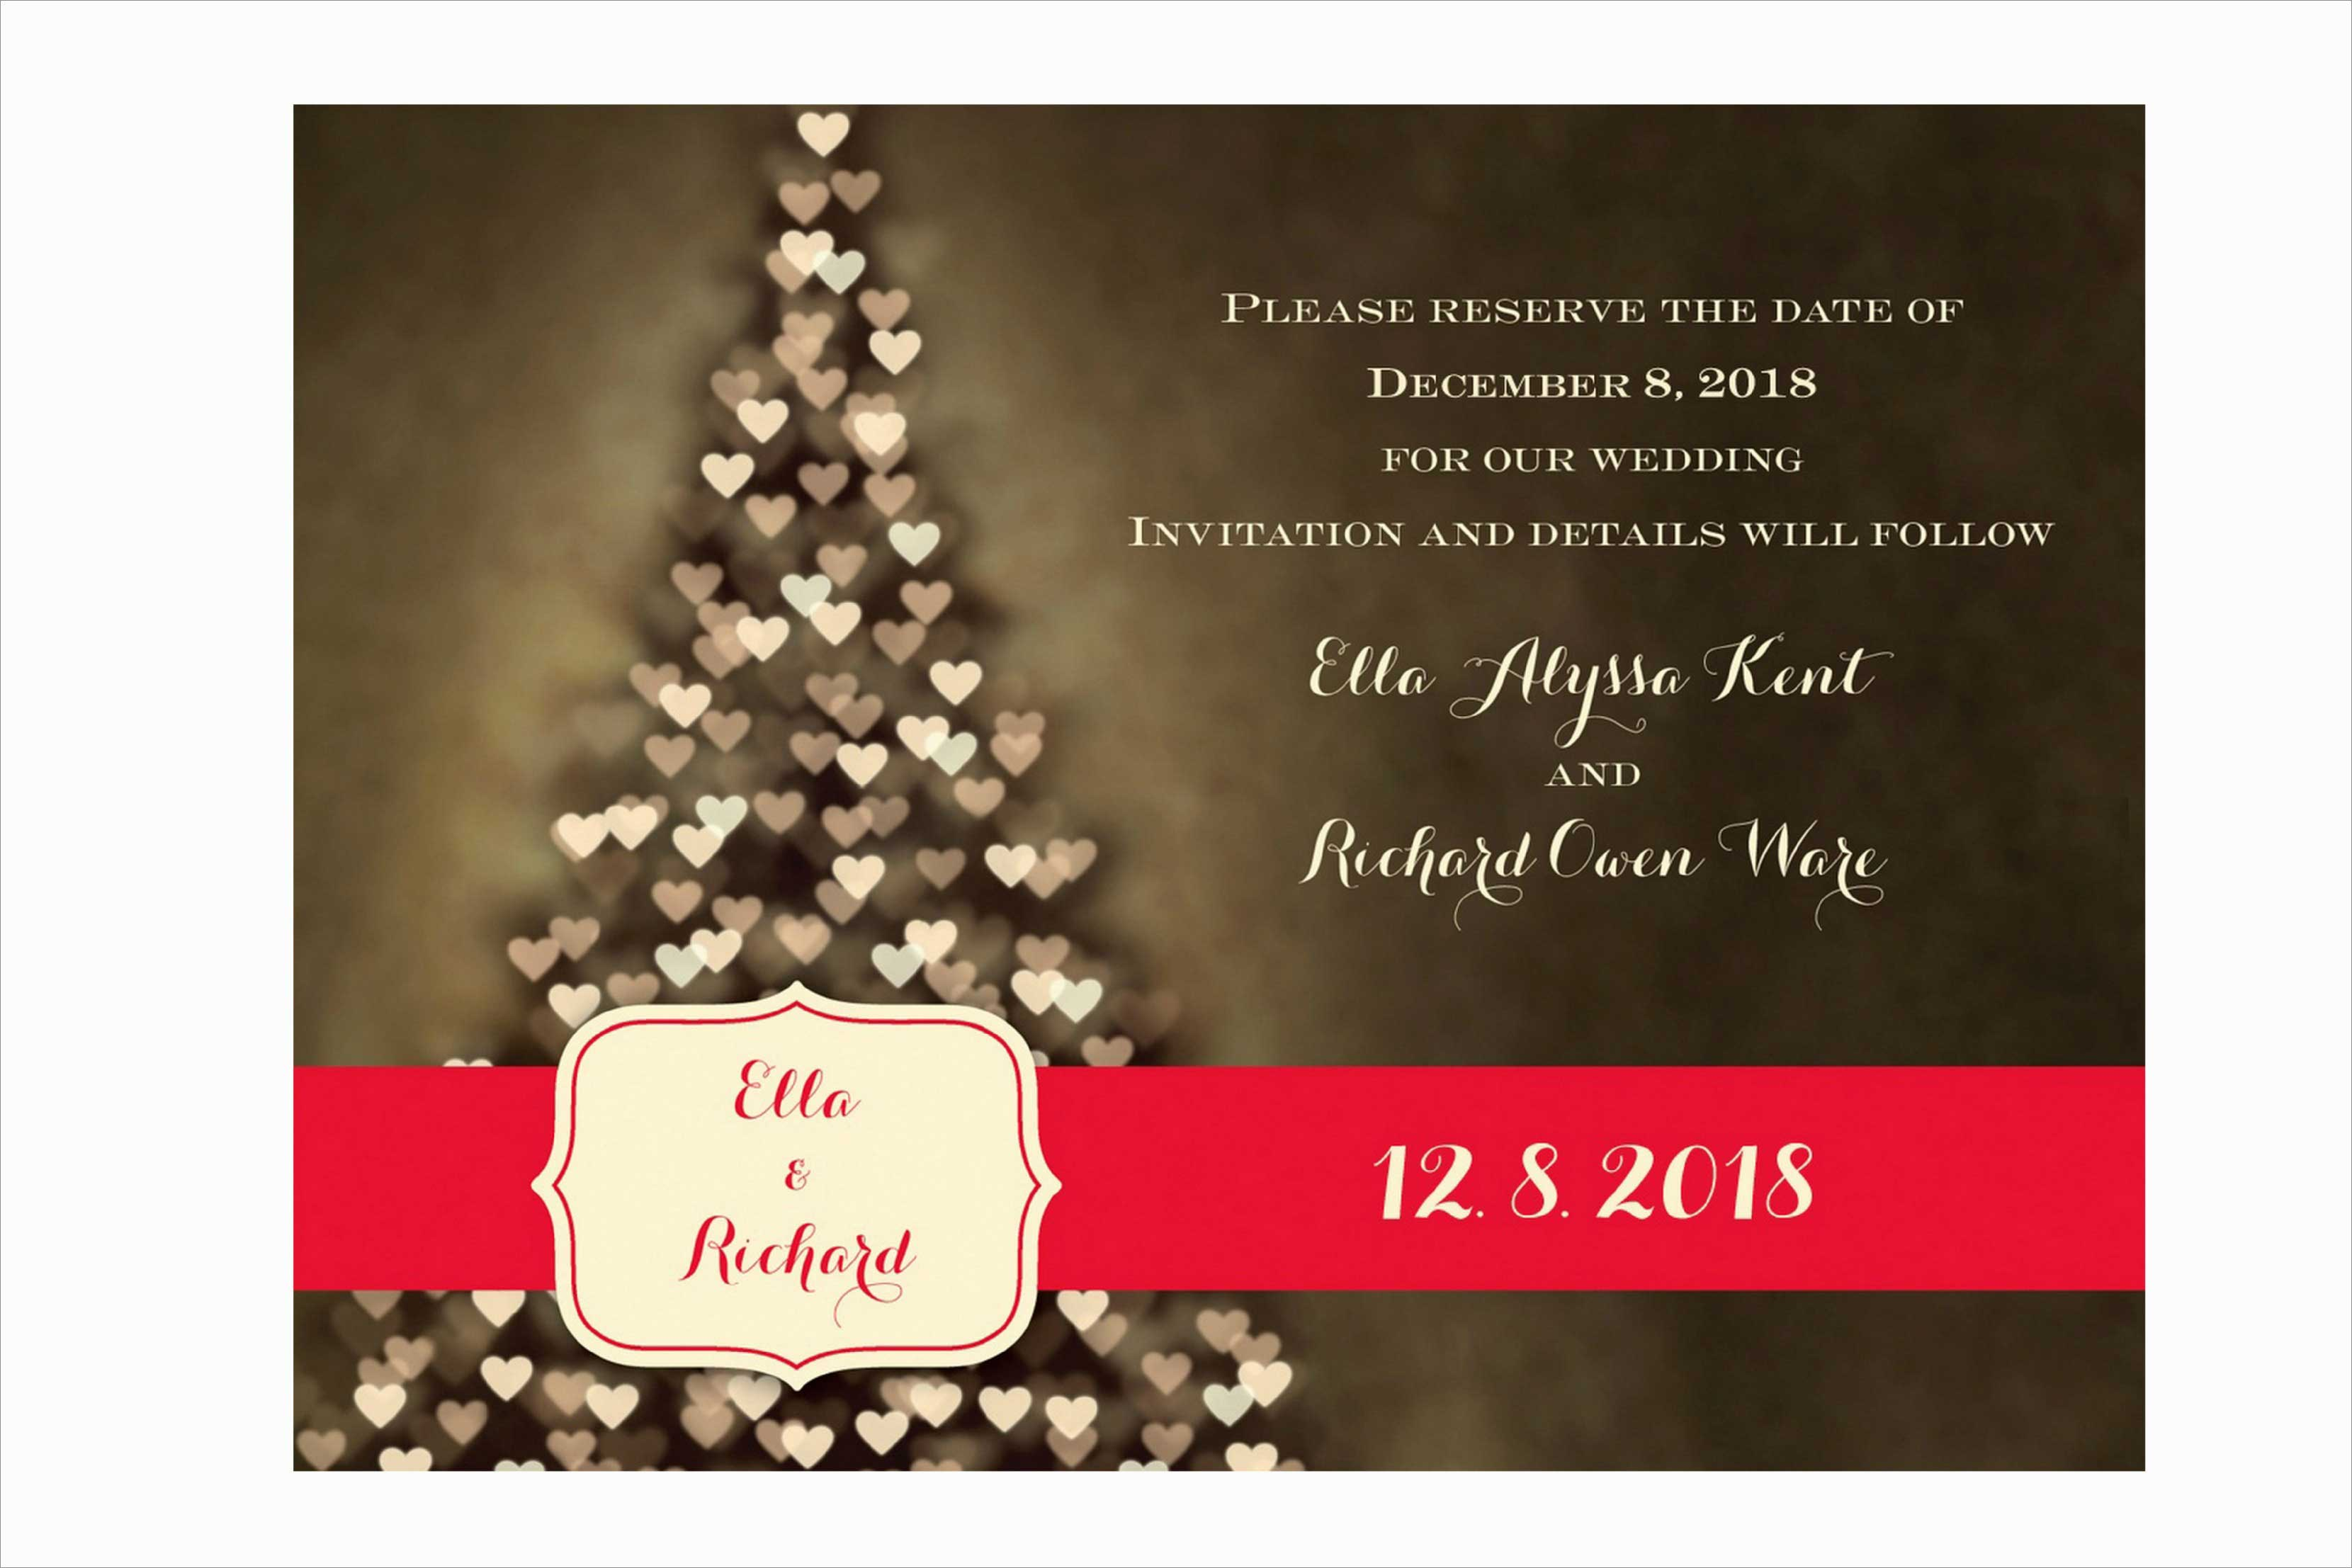 Carlson Craft Merry Hearts save the date invitation